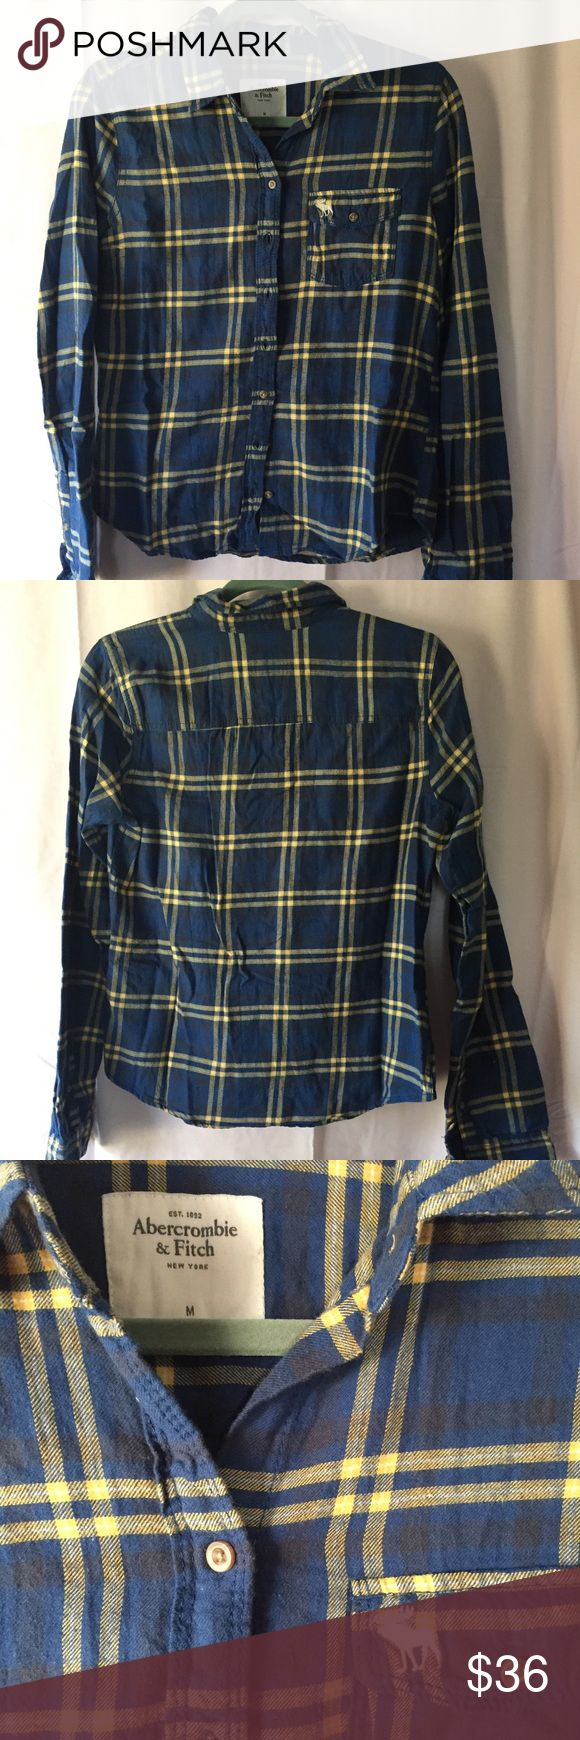 Abercrombie and Fitch Flannel Like New Abercrombie and Fitch Flannel. Beautiful blue and yellow. Worn a couple times but looks almost new with only mild wear. Abercrombie & Fitch Tops Button Down Shirts